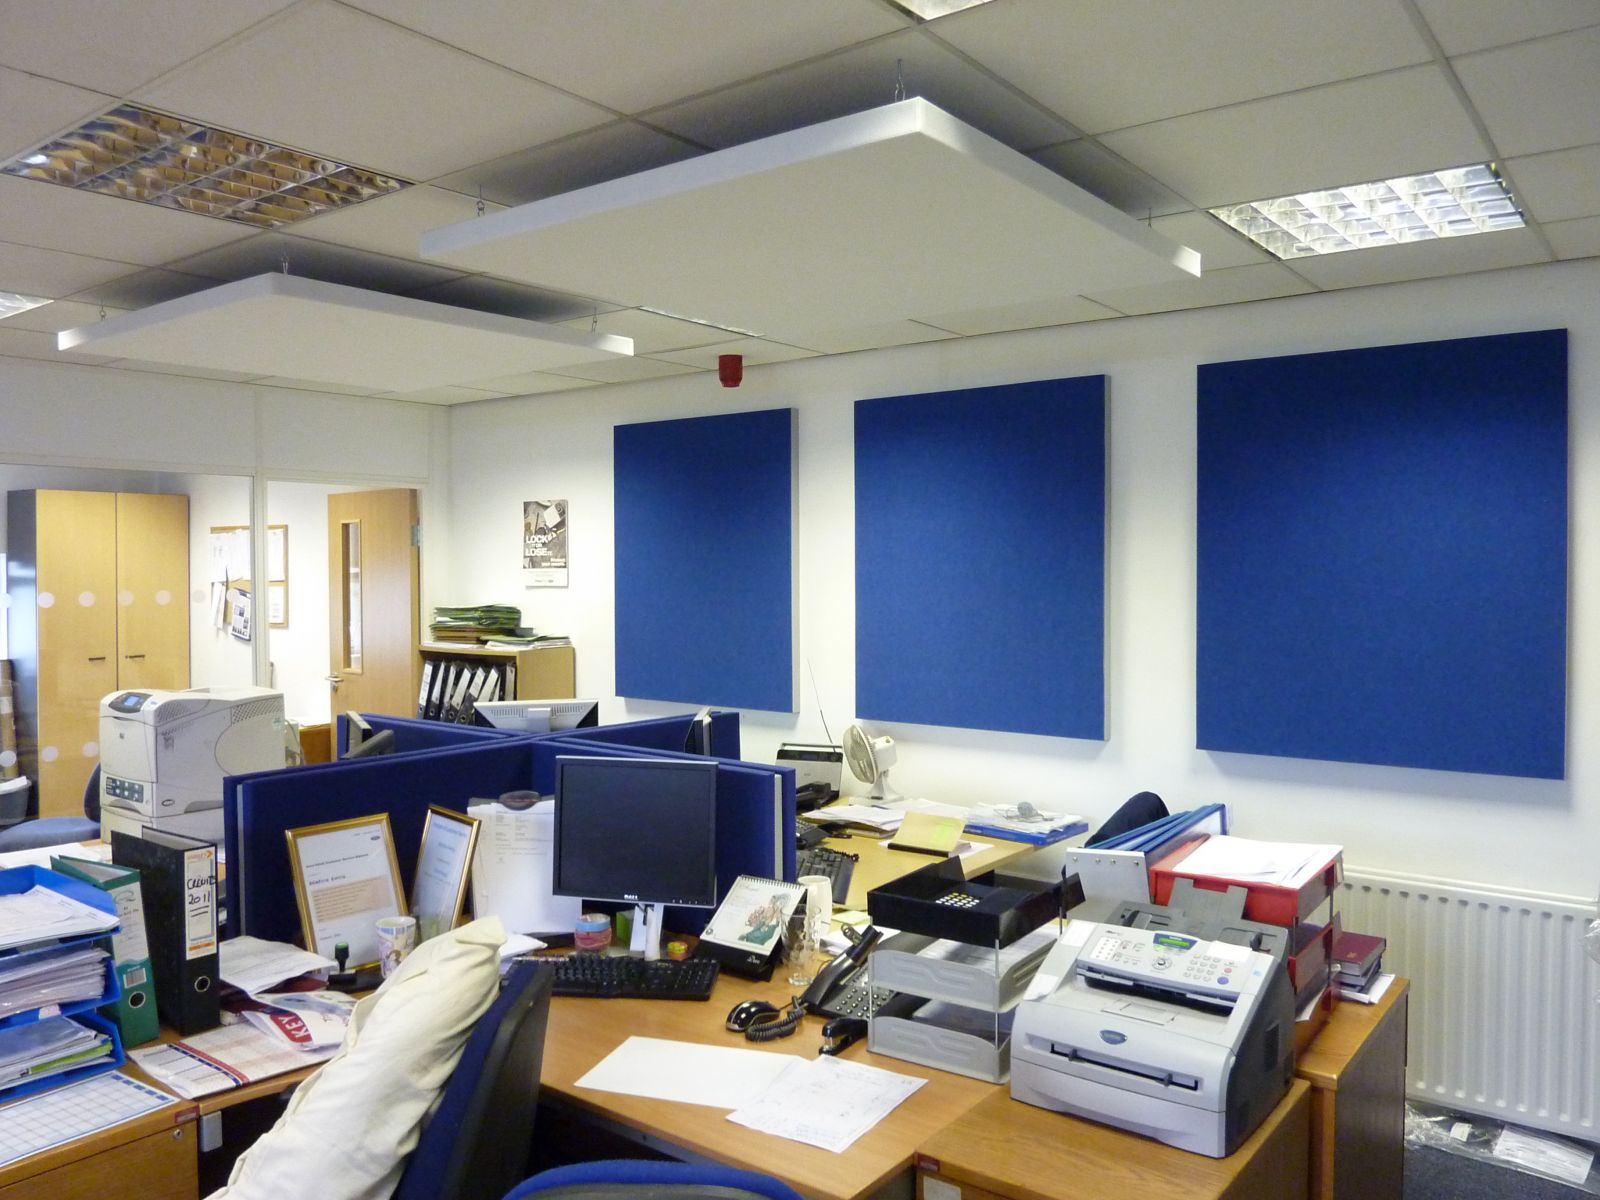 soundproofing office space. Office Soundproofing Space A